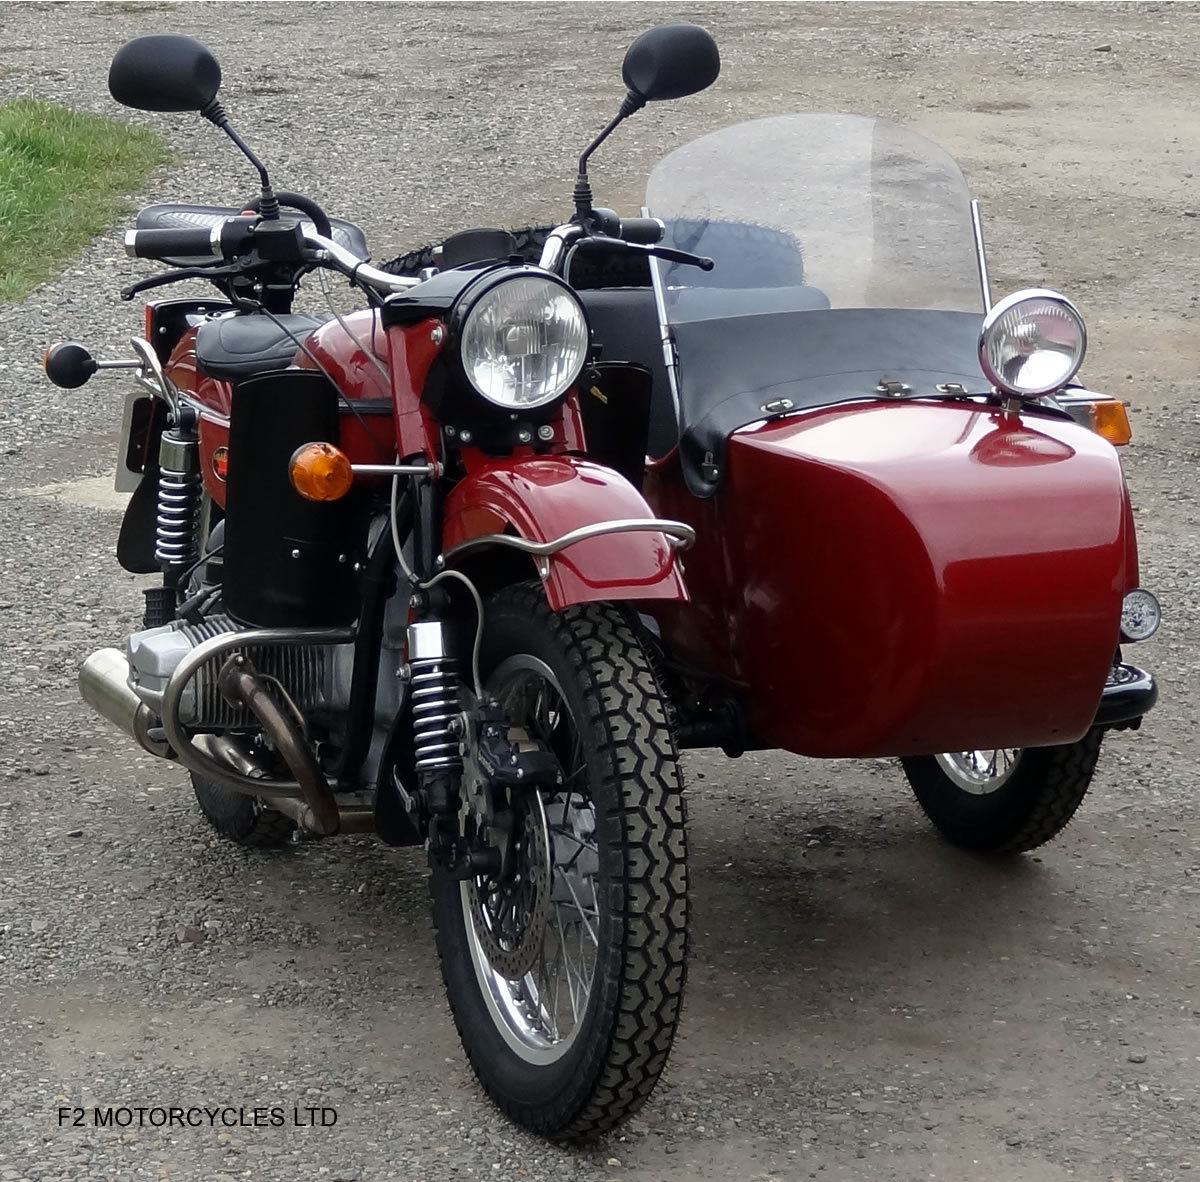 2011 Ural 750 Tourist, low mileage, UK spec, ready to ride SOLD (picture 3 of 6)